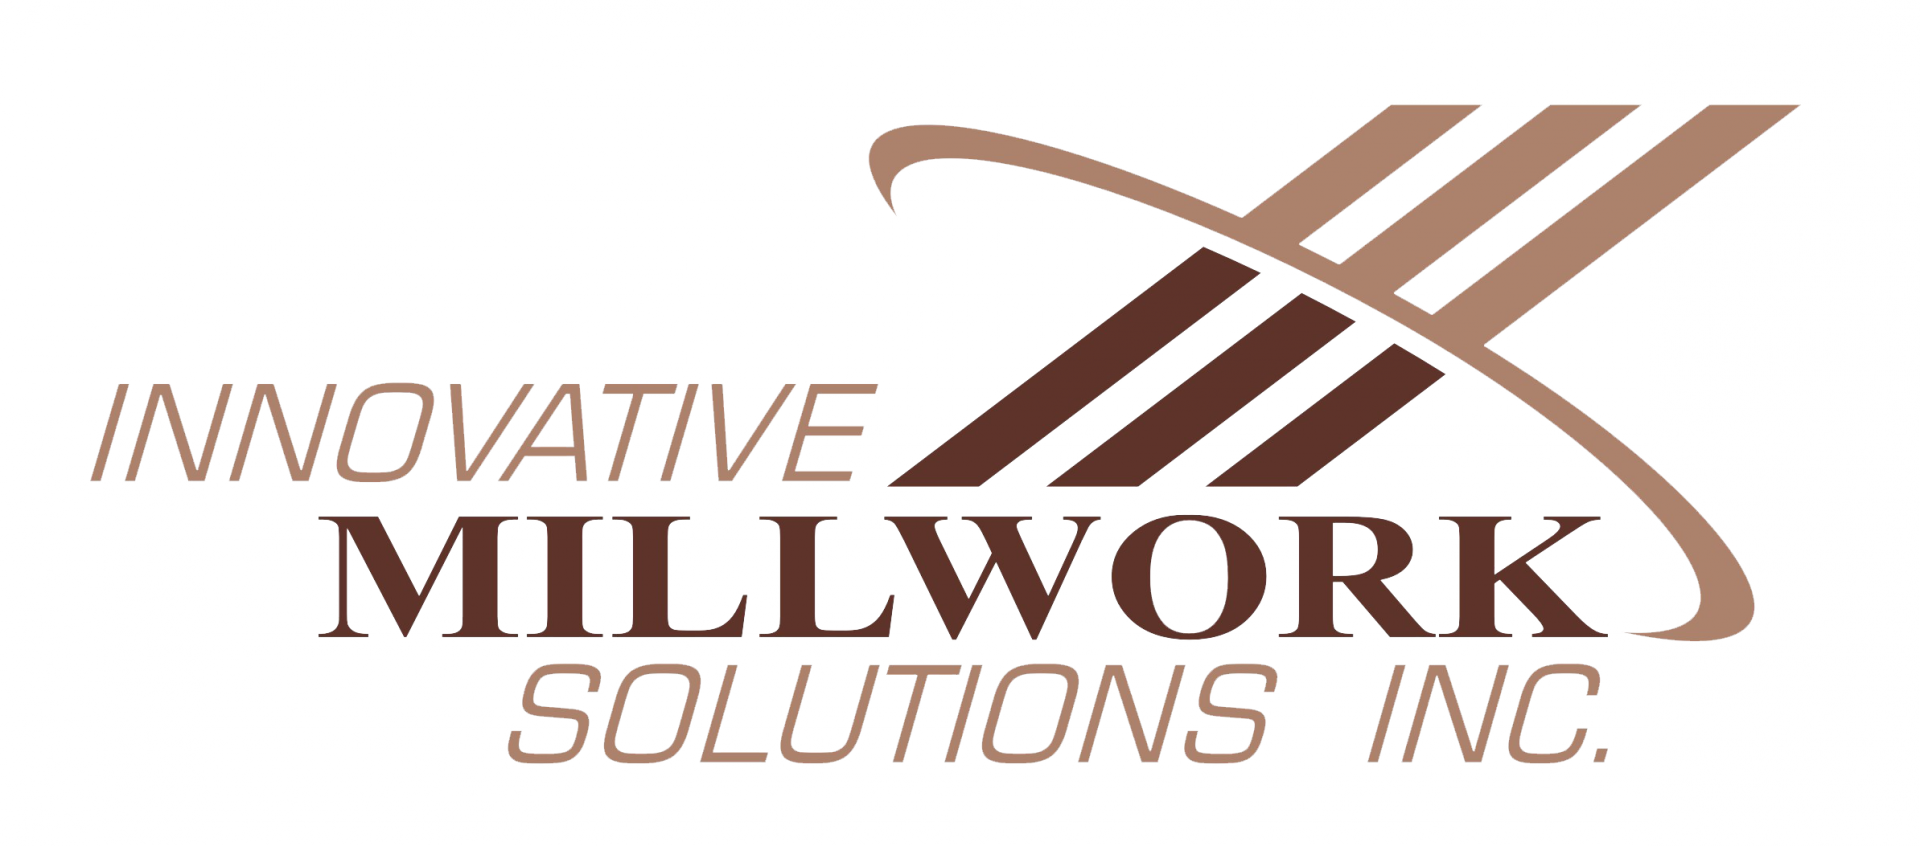 Innovative Millwork Solutions Inc